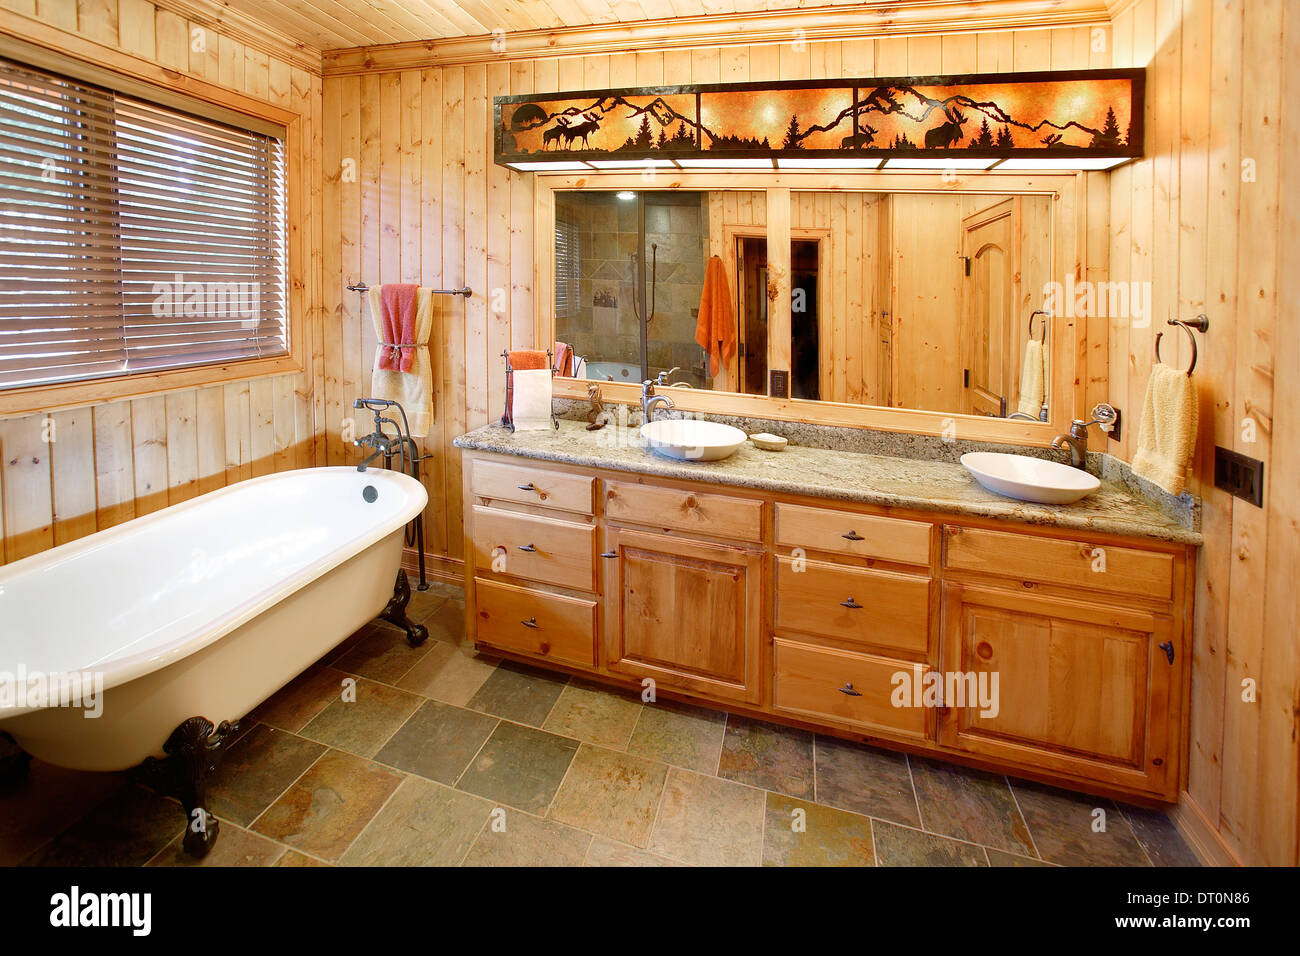 The master bath in a rustic mountain cabin. The room features a claw ...